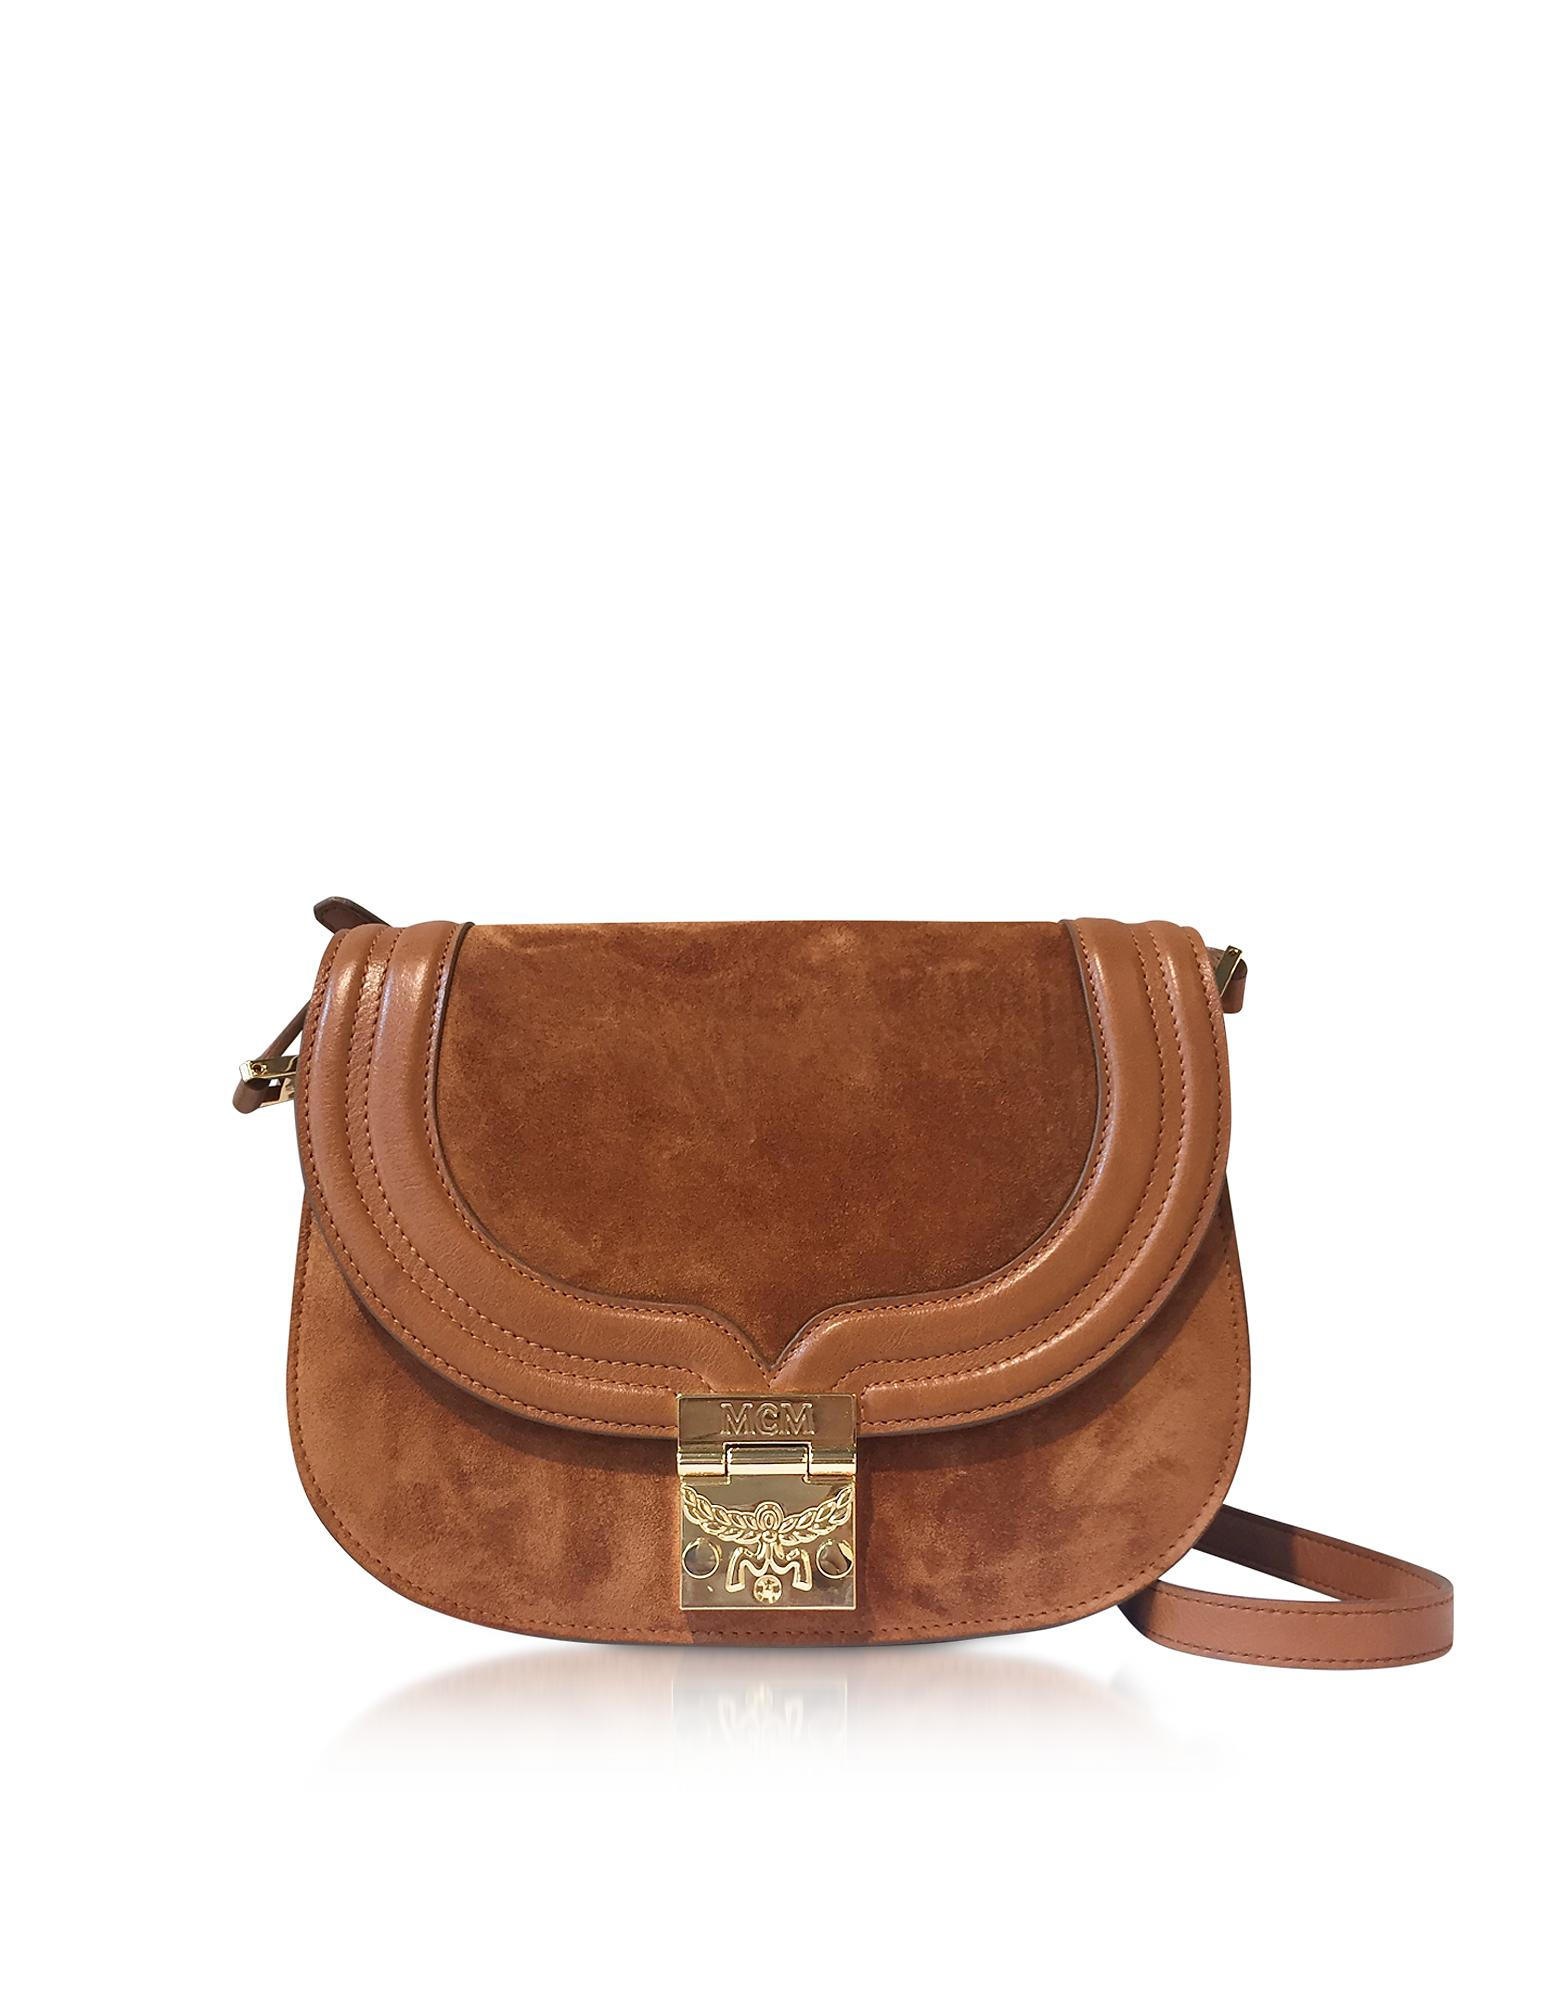 06e6f95069e MCM Trisha Cognac Suede And Leather Small Shoulder Bag in Brown - Lyst